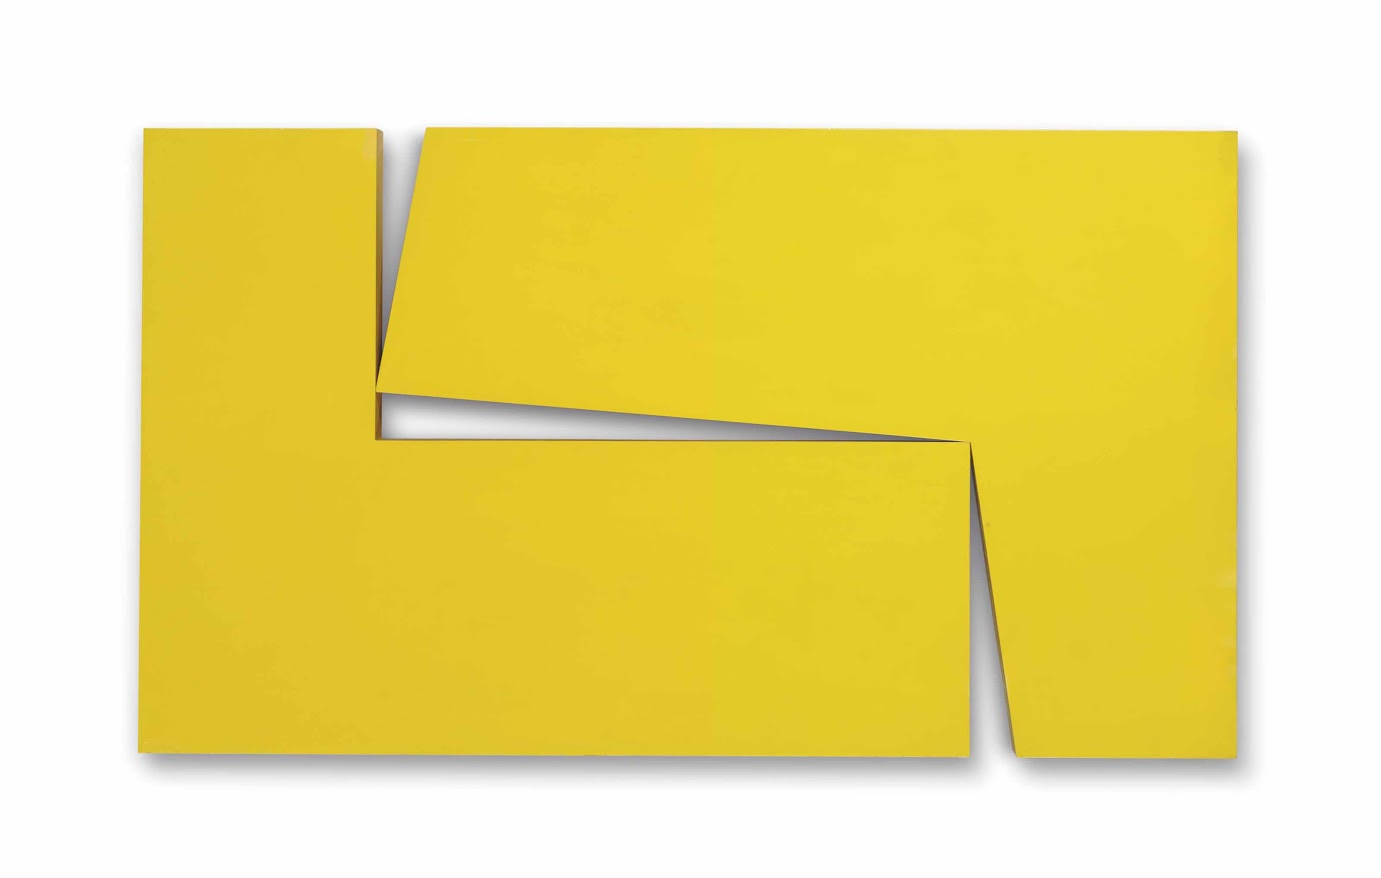 Carmen Herrera, Amarillo Dos, from the series Estructuras (1971)